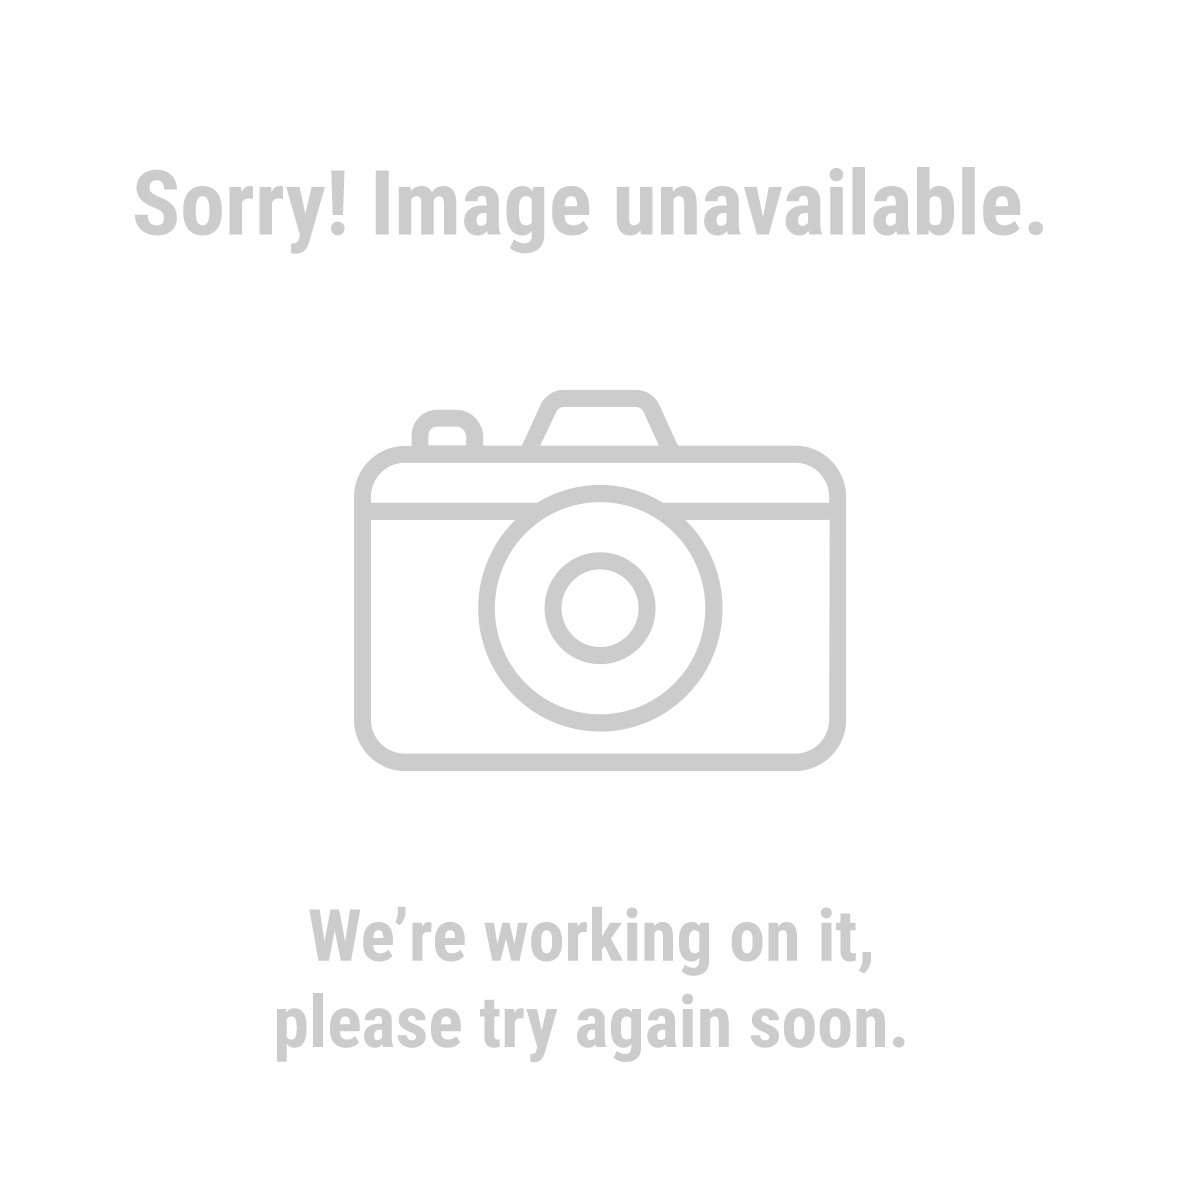 Drill Master 69645 Angle Grinder, 4-1/2""